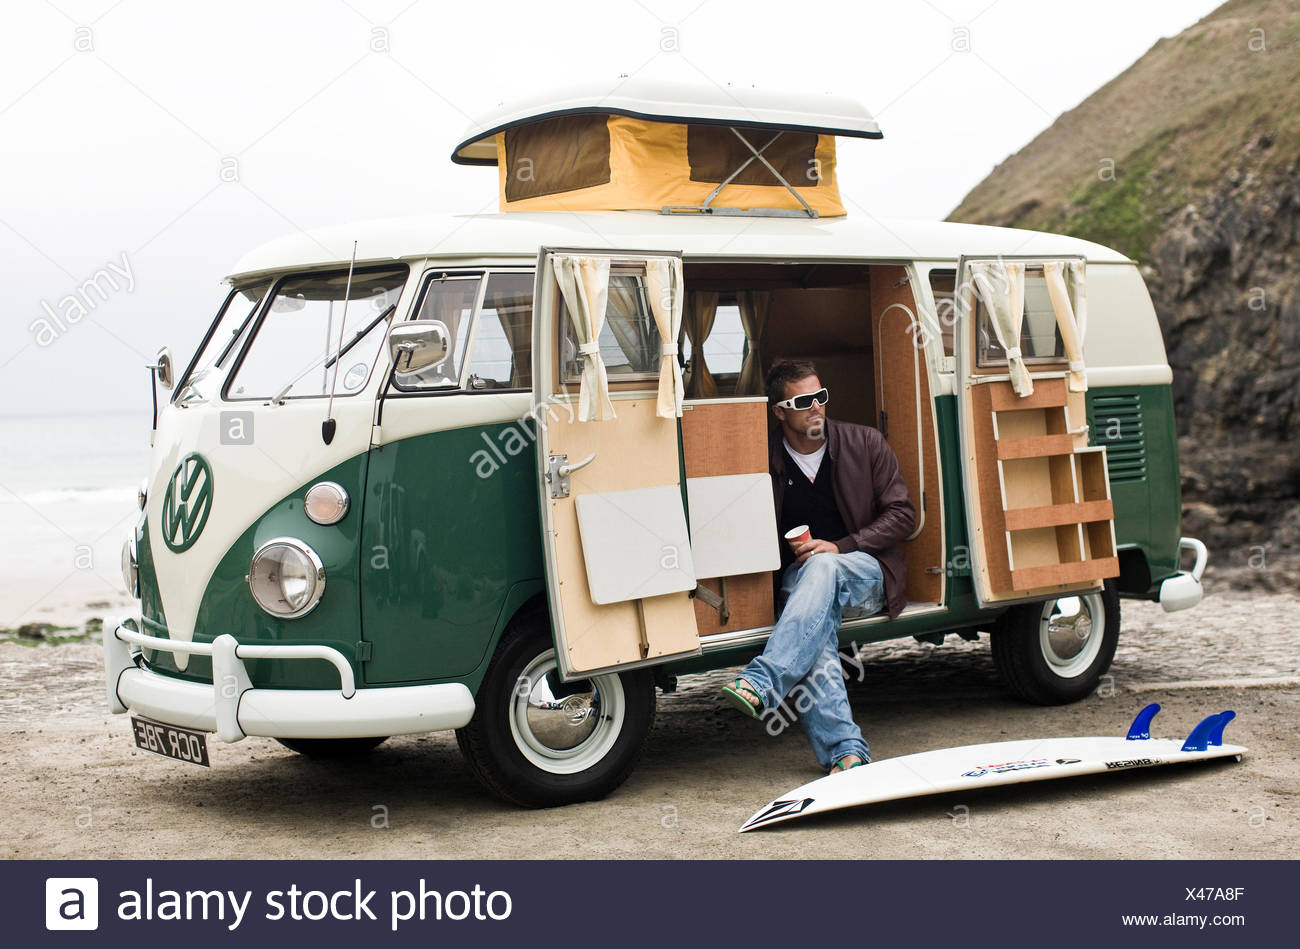 Surfers with VW campervan, St Agnes, Cornwall, UK - Stock Image